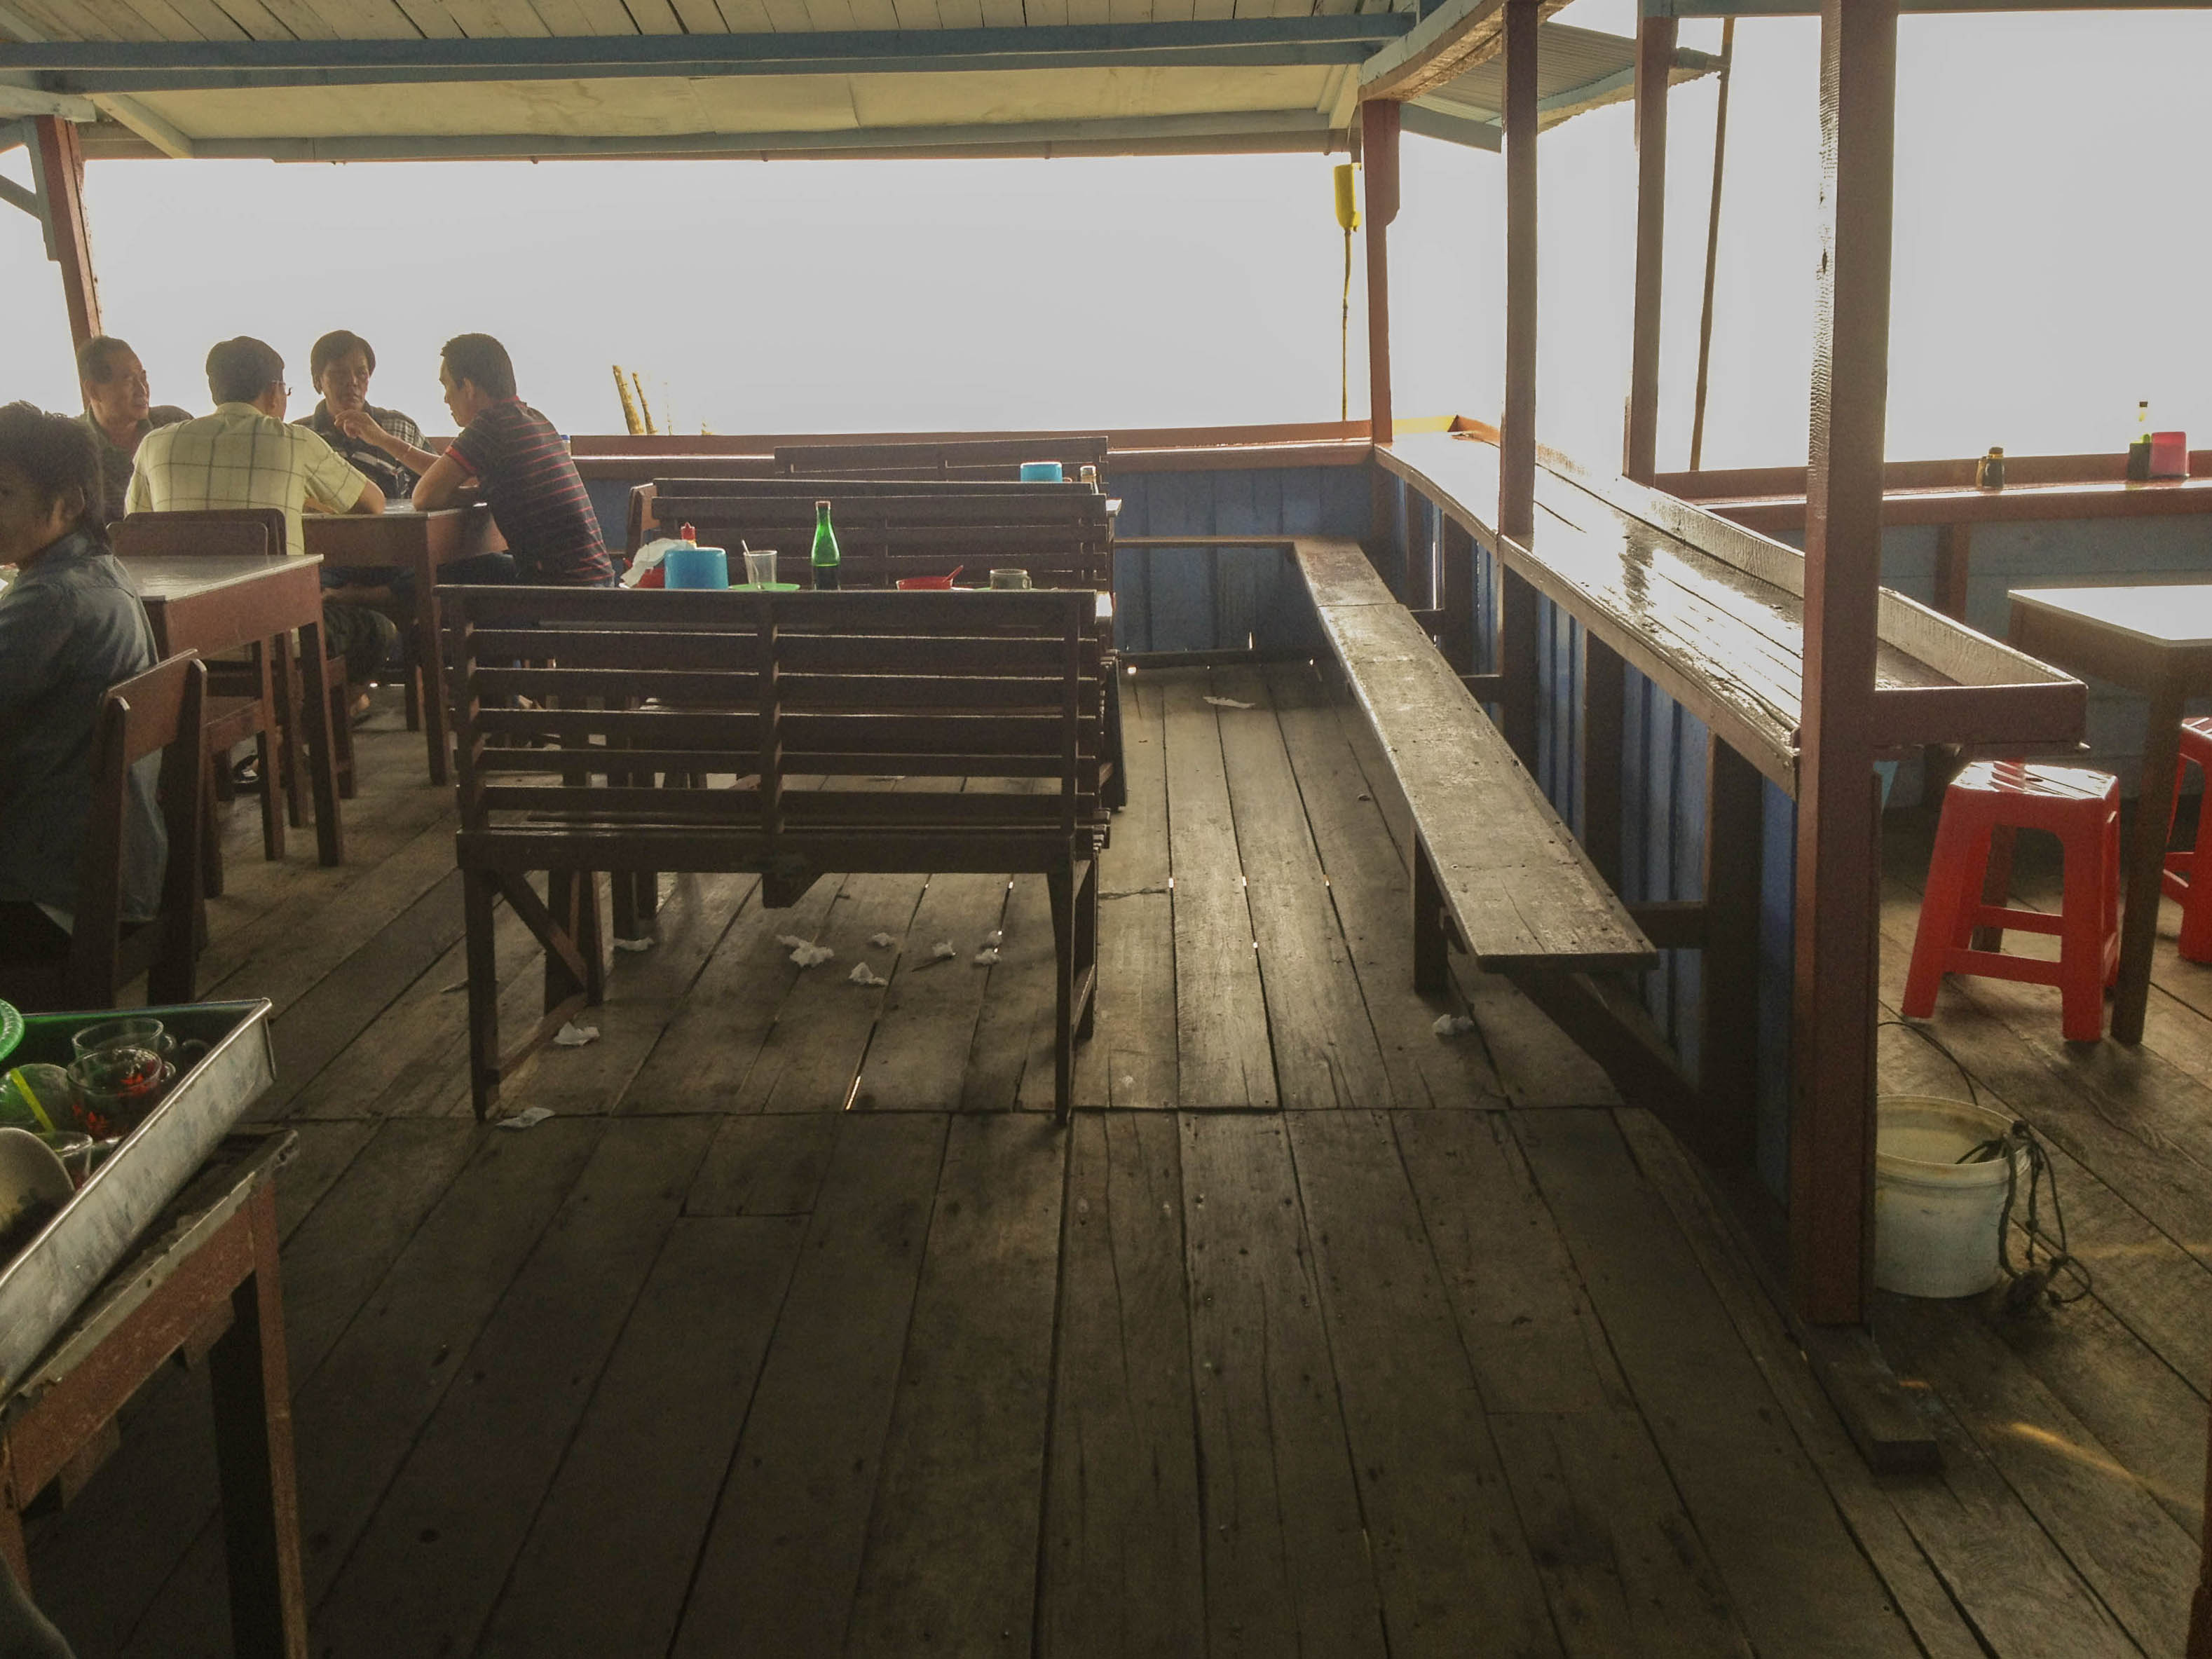 One of the coffee shops that is on top of the sea. It was held with planks of wood so that they could stay above water.